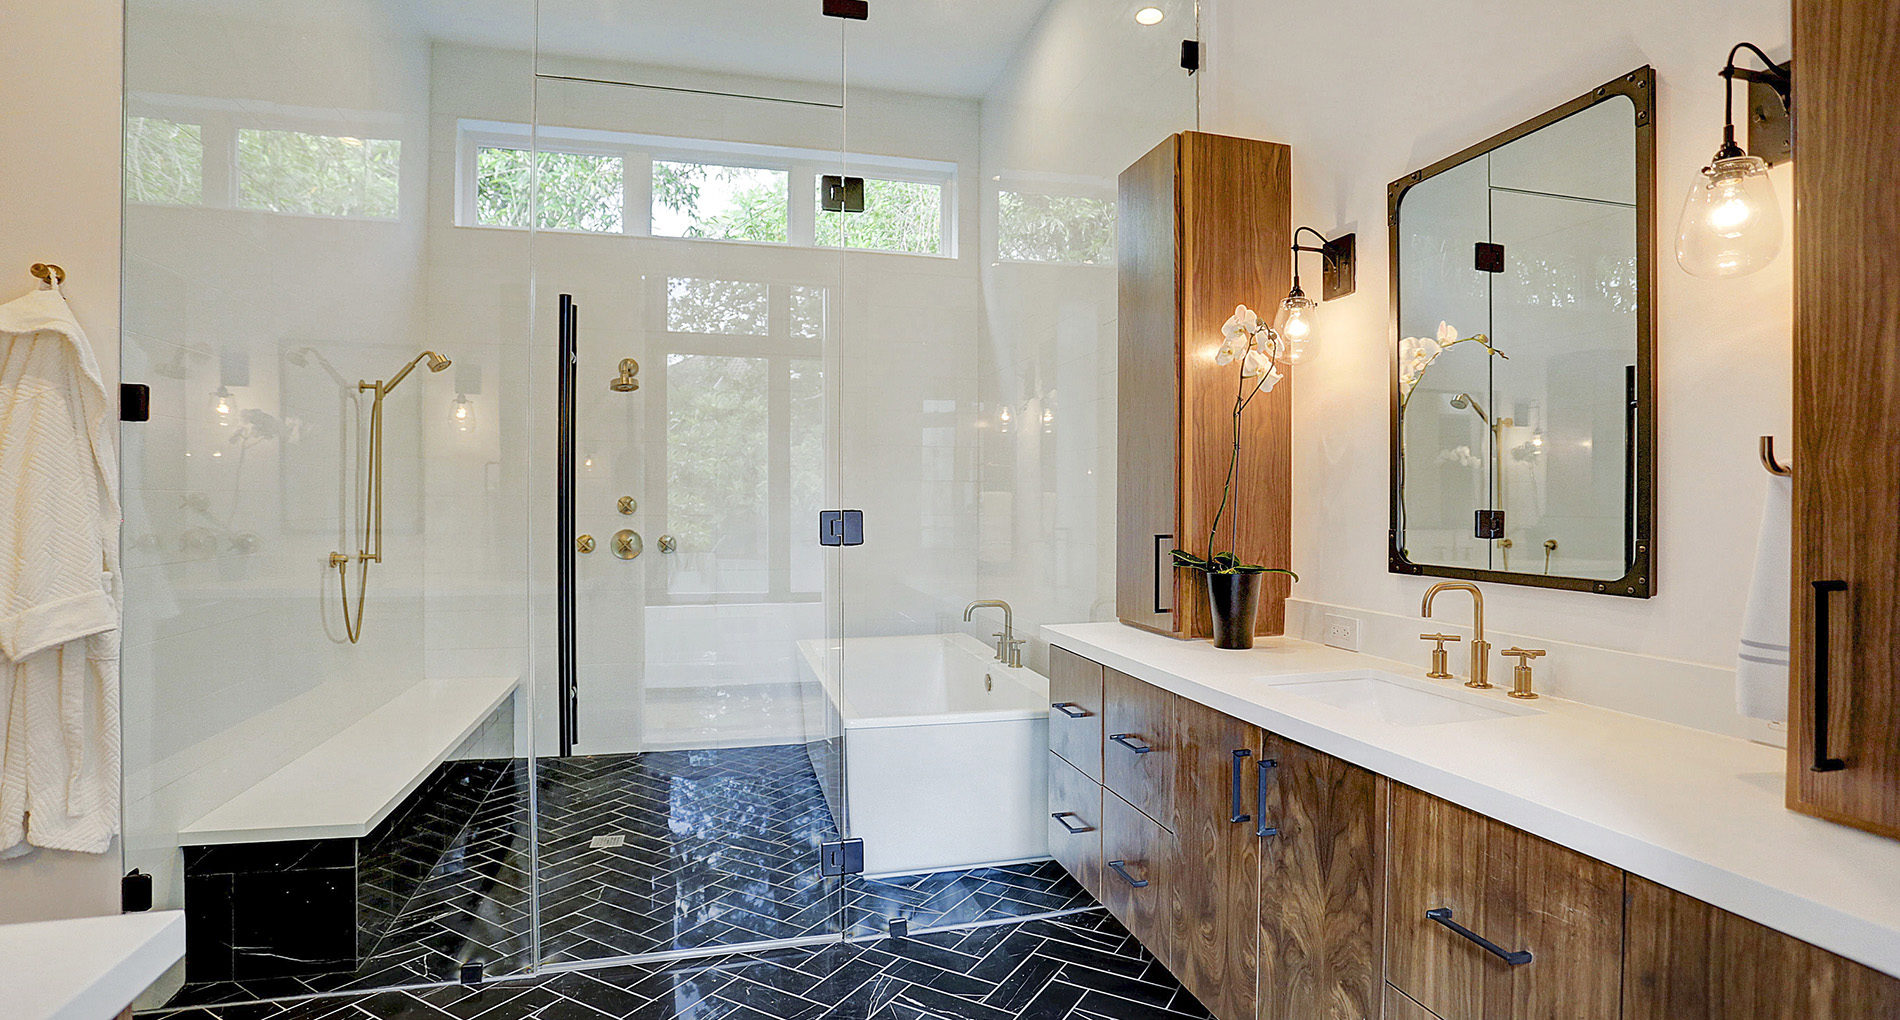 Bathroom Remodeling & Design in Houston | Alair Homes Houston